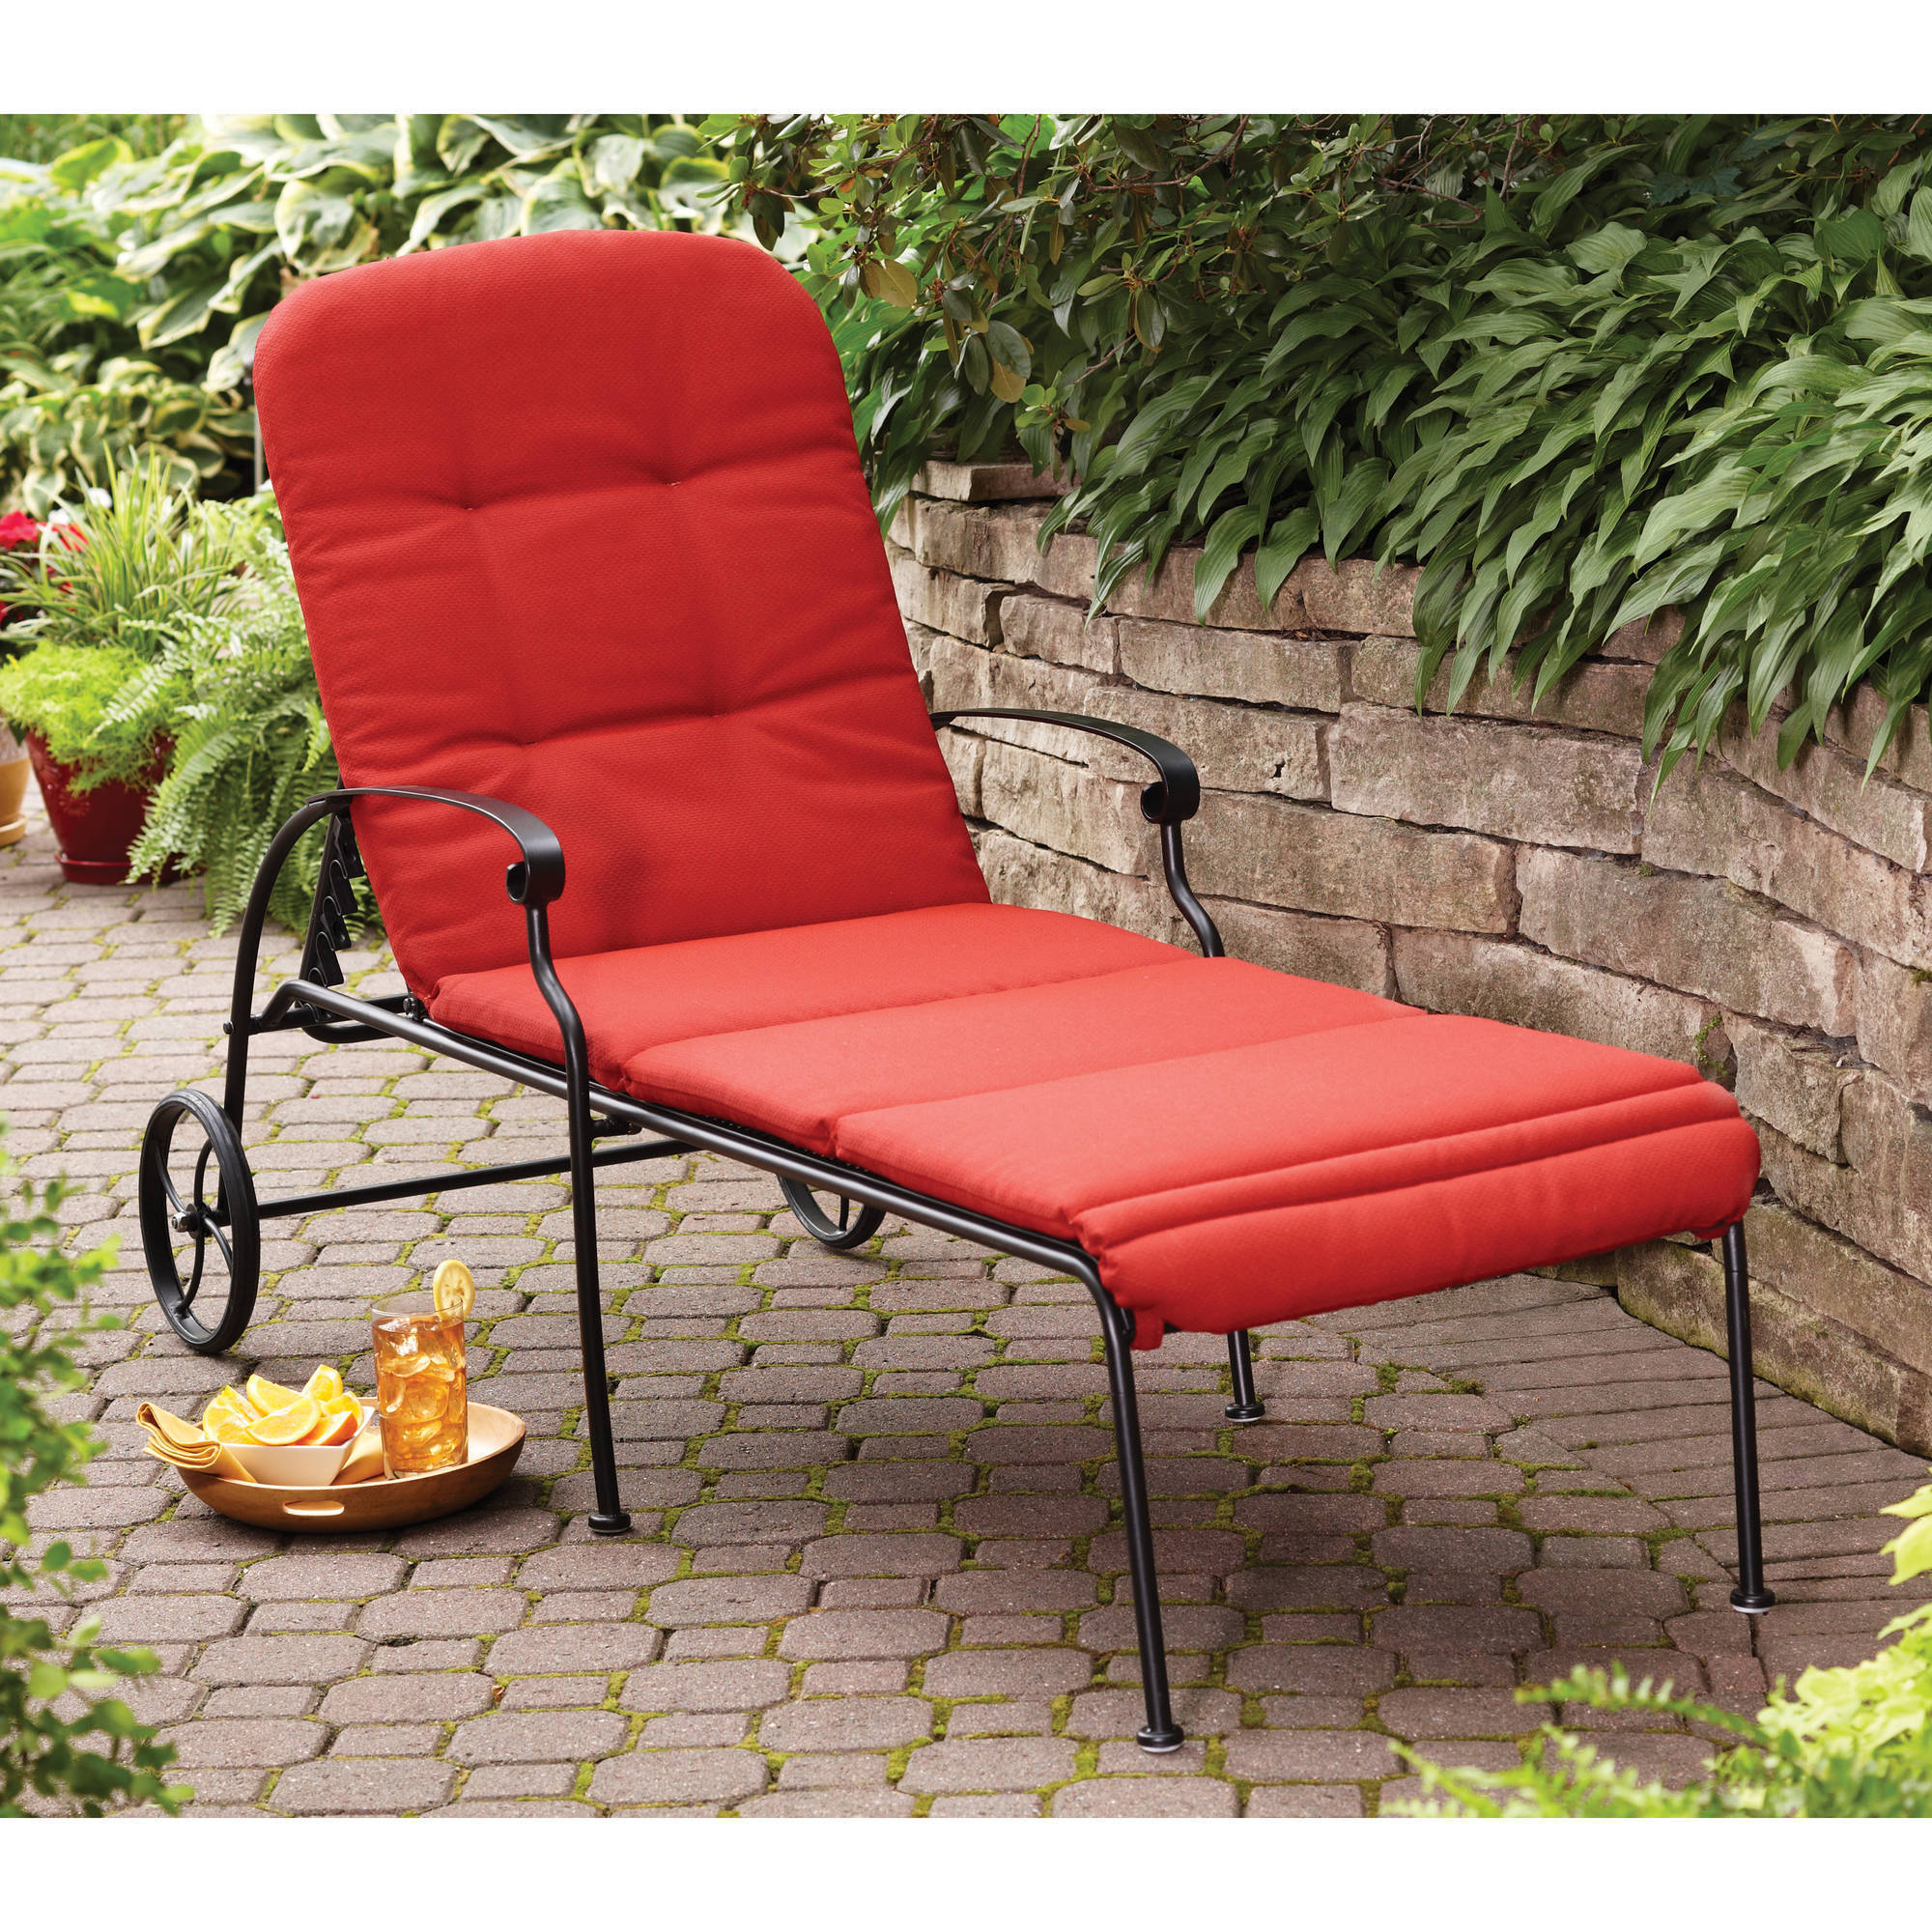 Better Homes and Gardens Clayton Court Chaise Lounge with Wheels